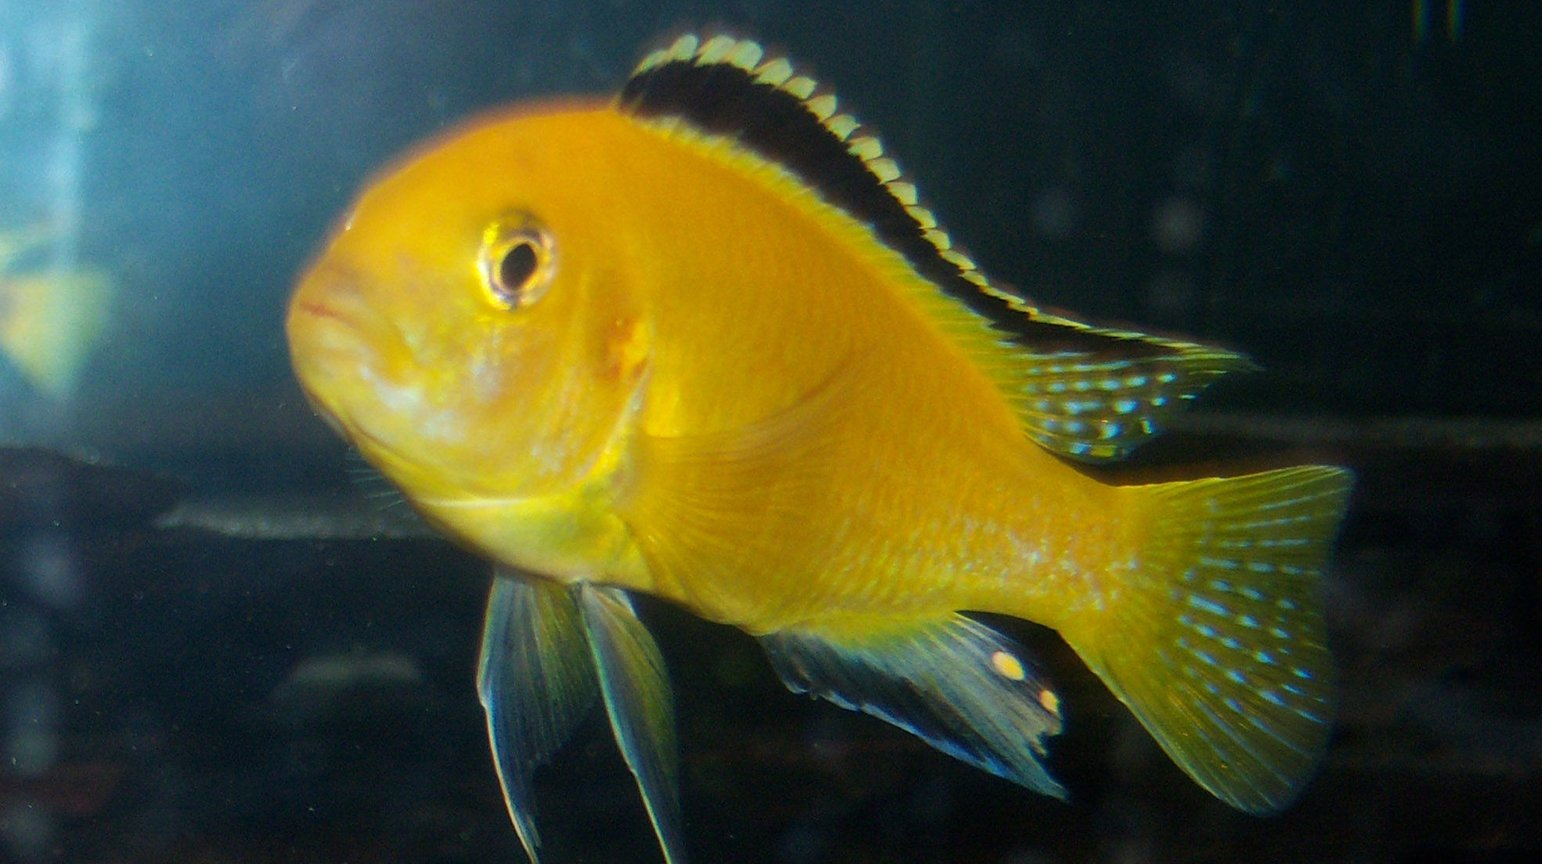 freshwater fish - labidochromis caeruleus - electric yellow cichlid stocking in 150 gallons tank - yellow-lab